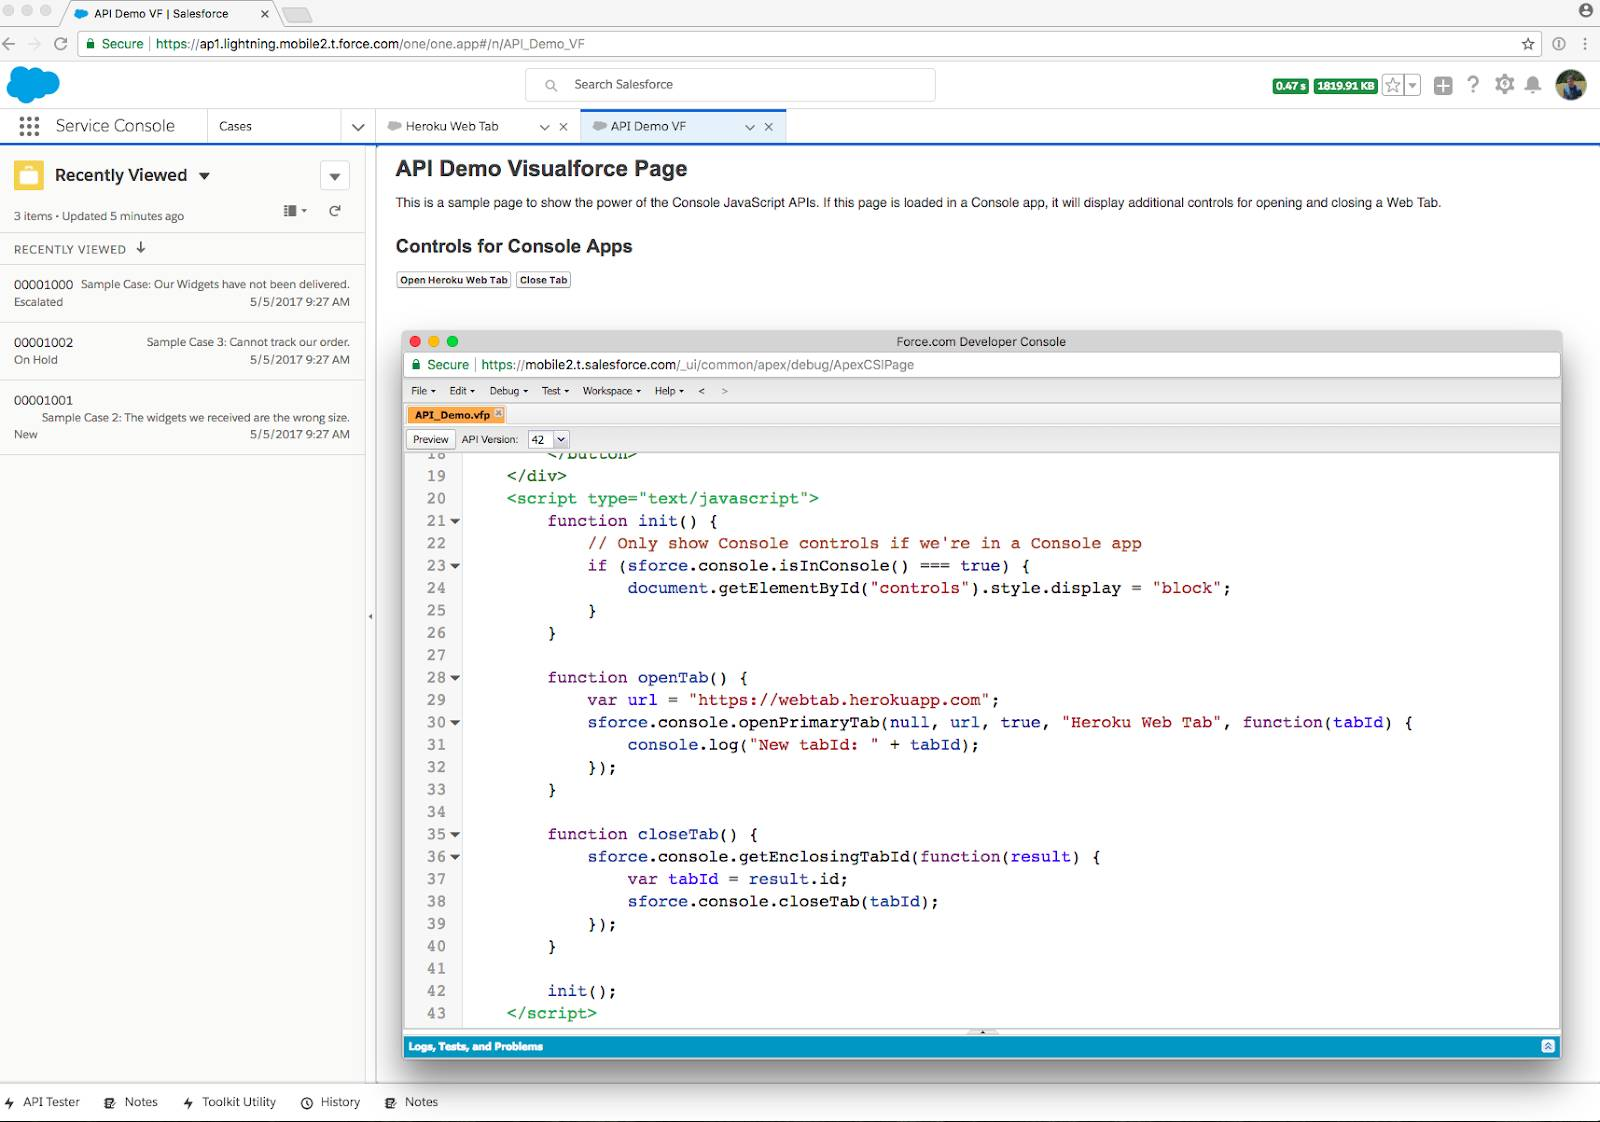 A Visualforce page showing sample code with the console JavaScript API functions